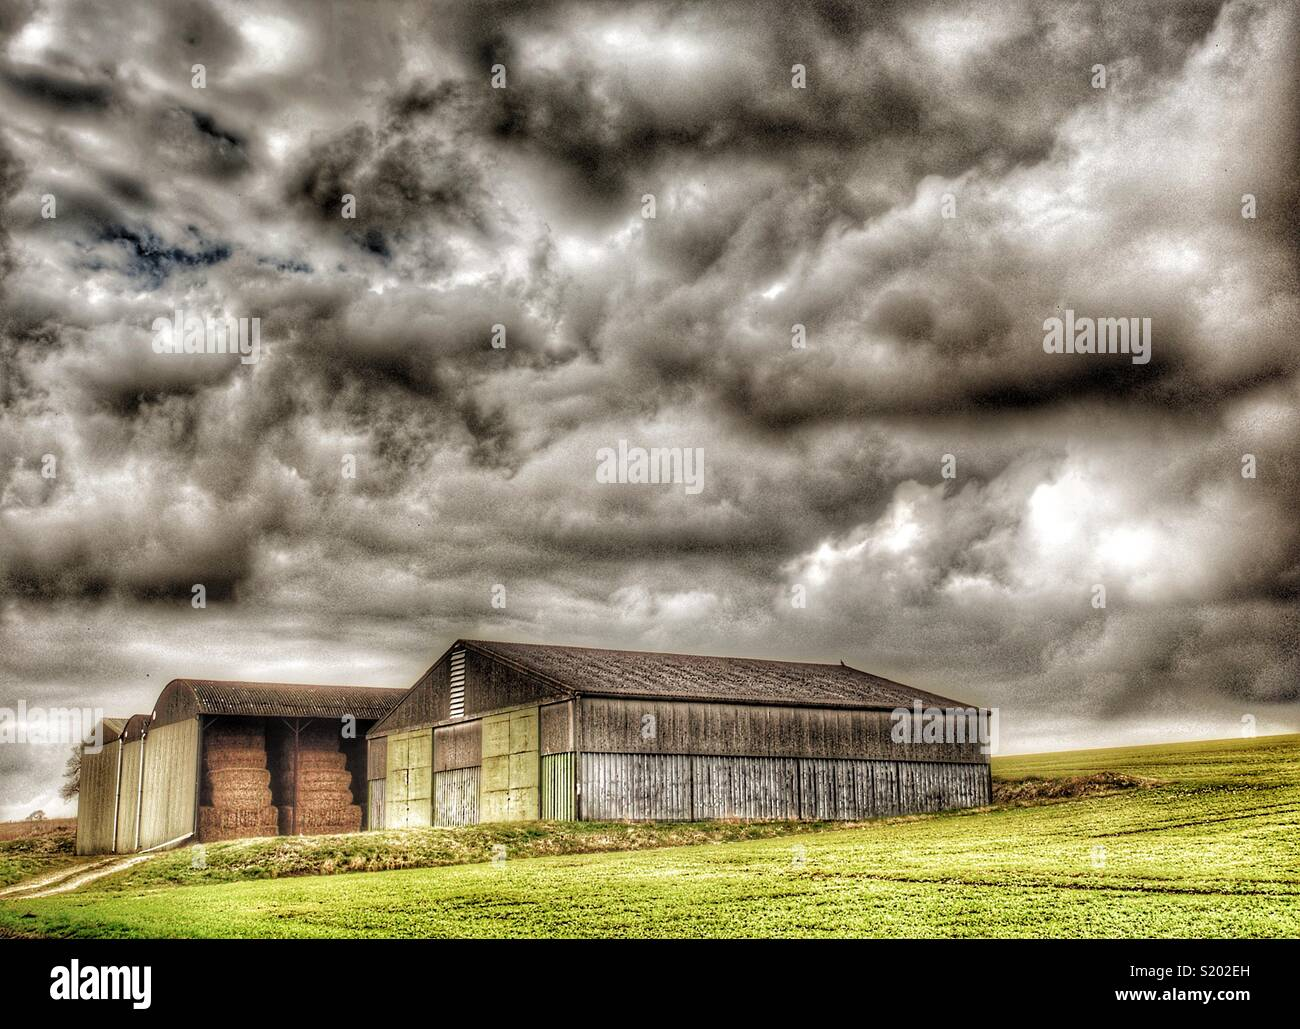 Barns in field with an angry sky, Yorkshire Dales,England, UK Stock Photo